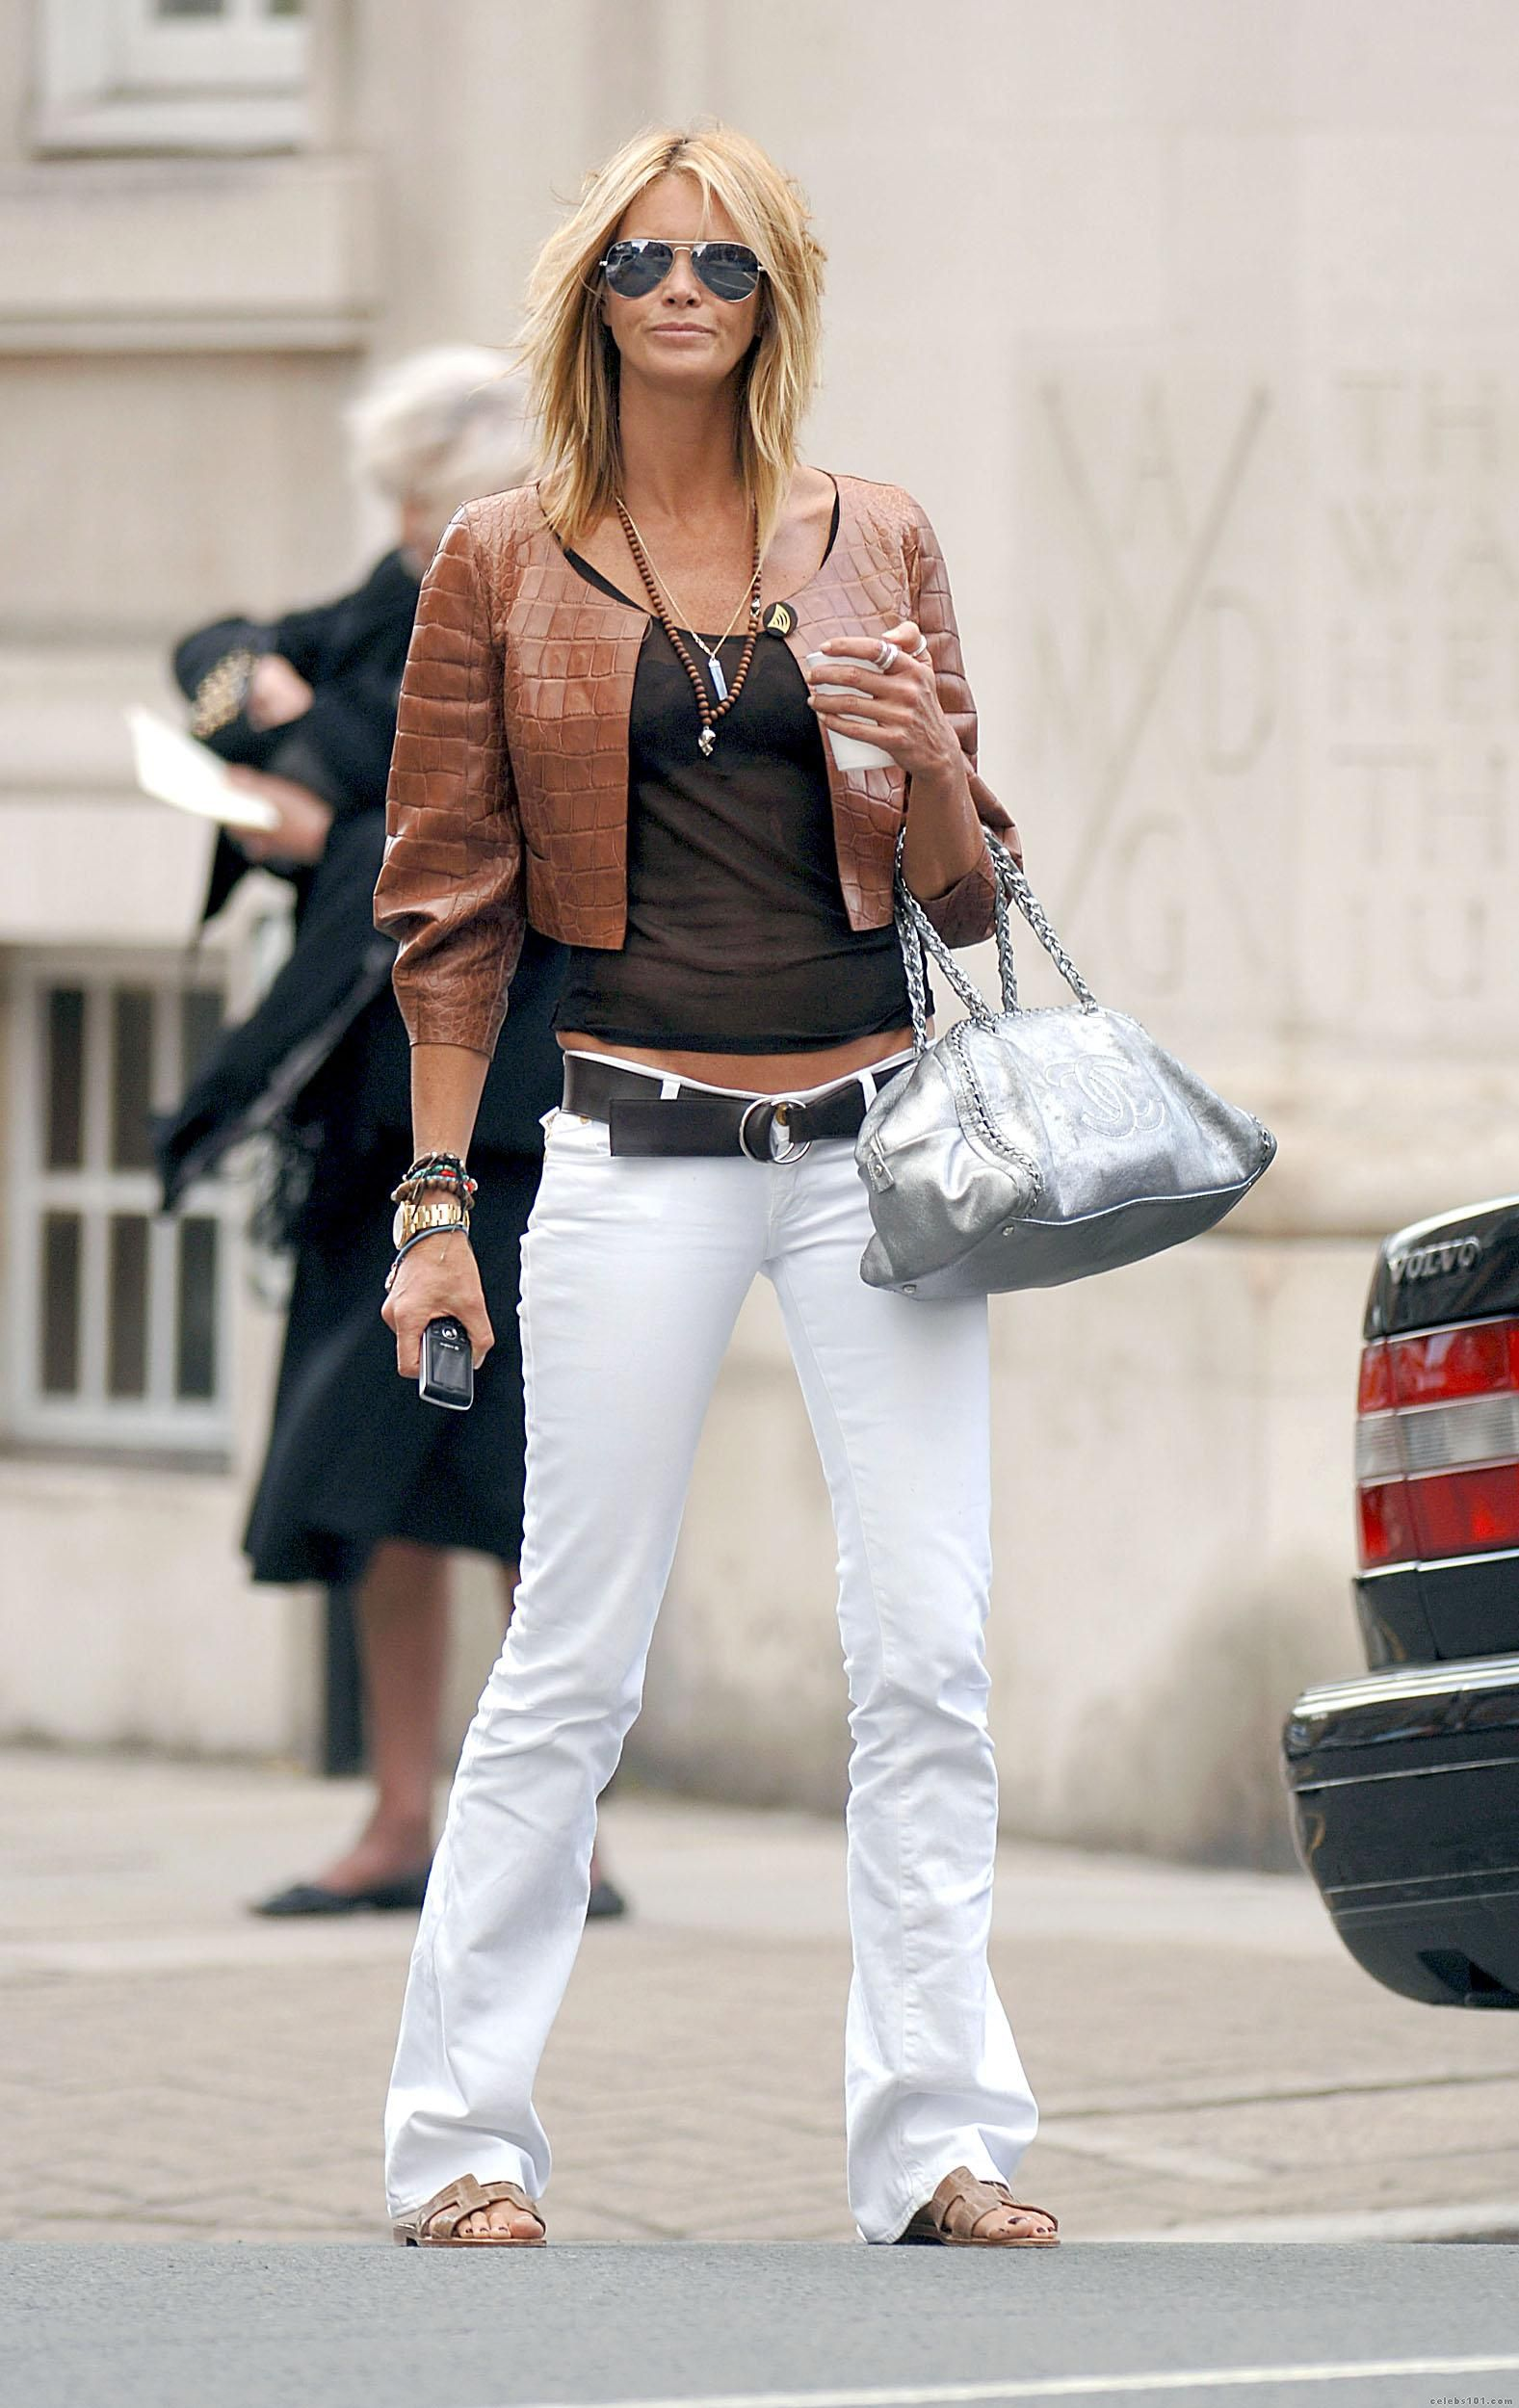 Casual Look Haare Elle Macpherson Street Style I Love The Way She Dresses In